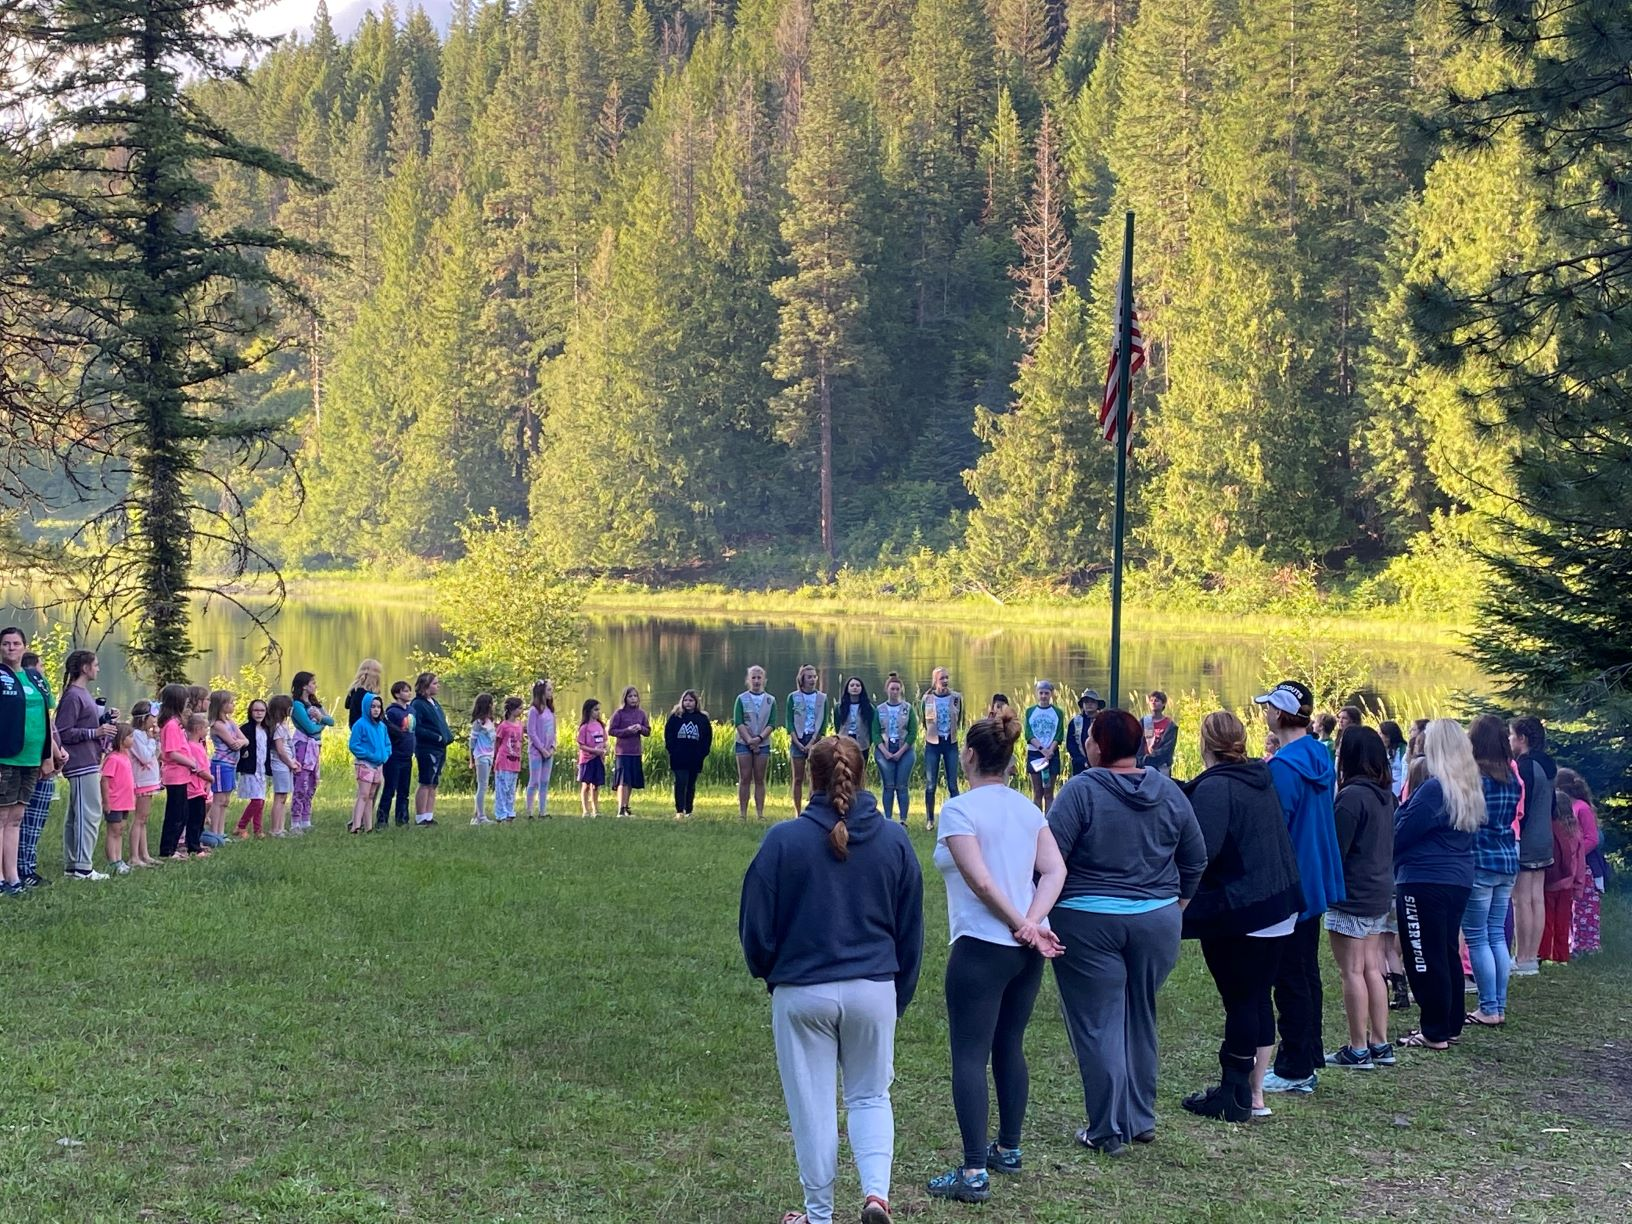 Girl Scout summer campers standing in a big circle on the grass, with Lake Coeur d'Alene and trees in the background.